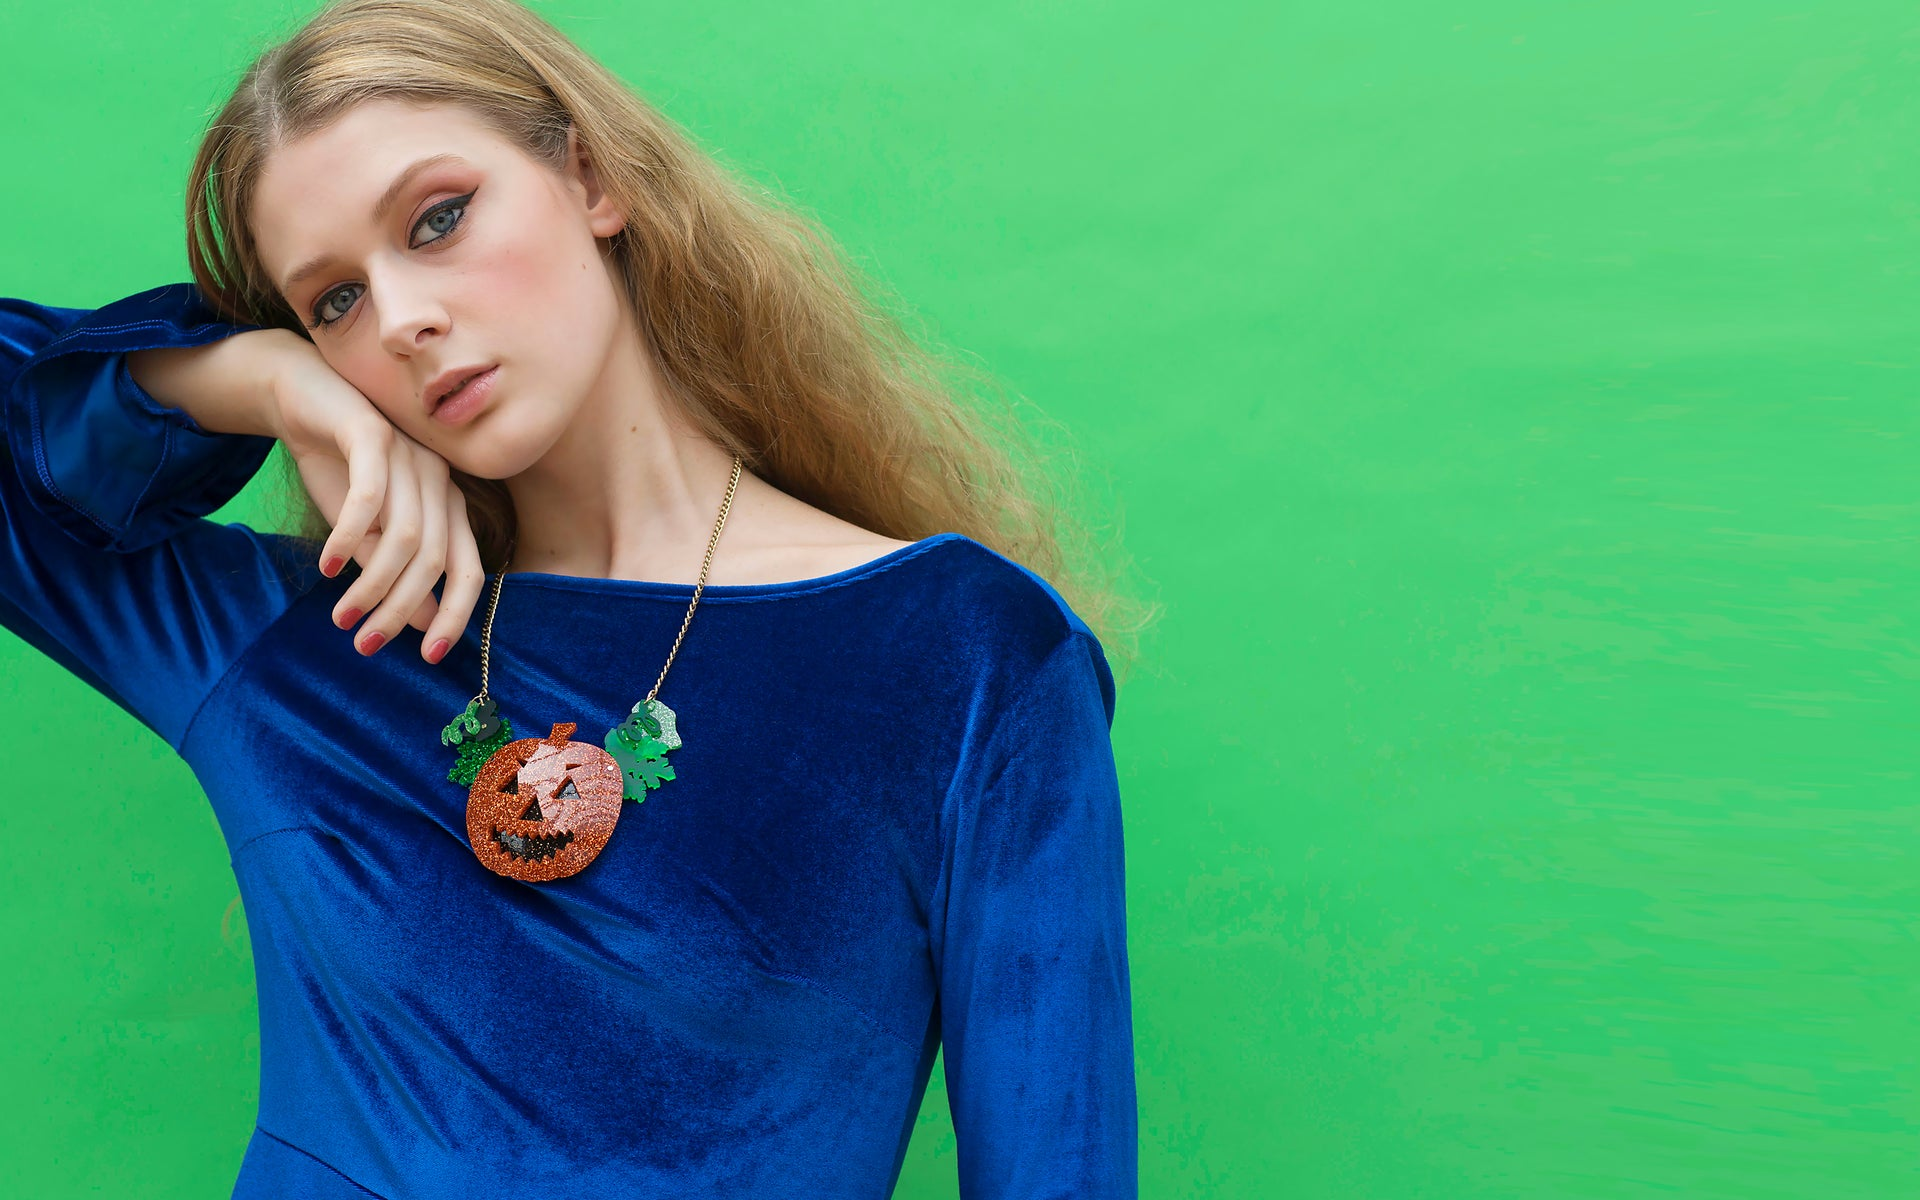 jack-o-lantern-statement-necklace